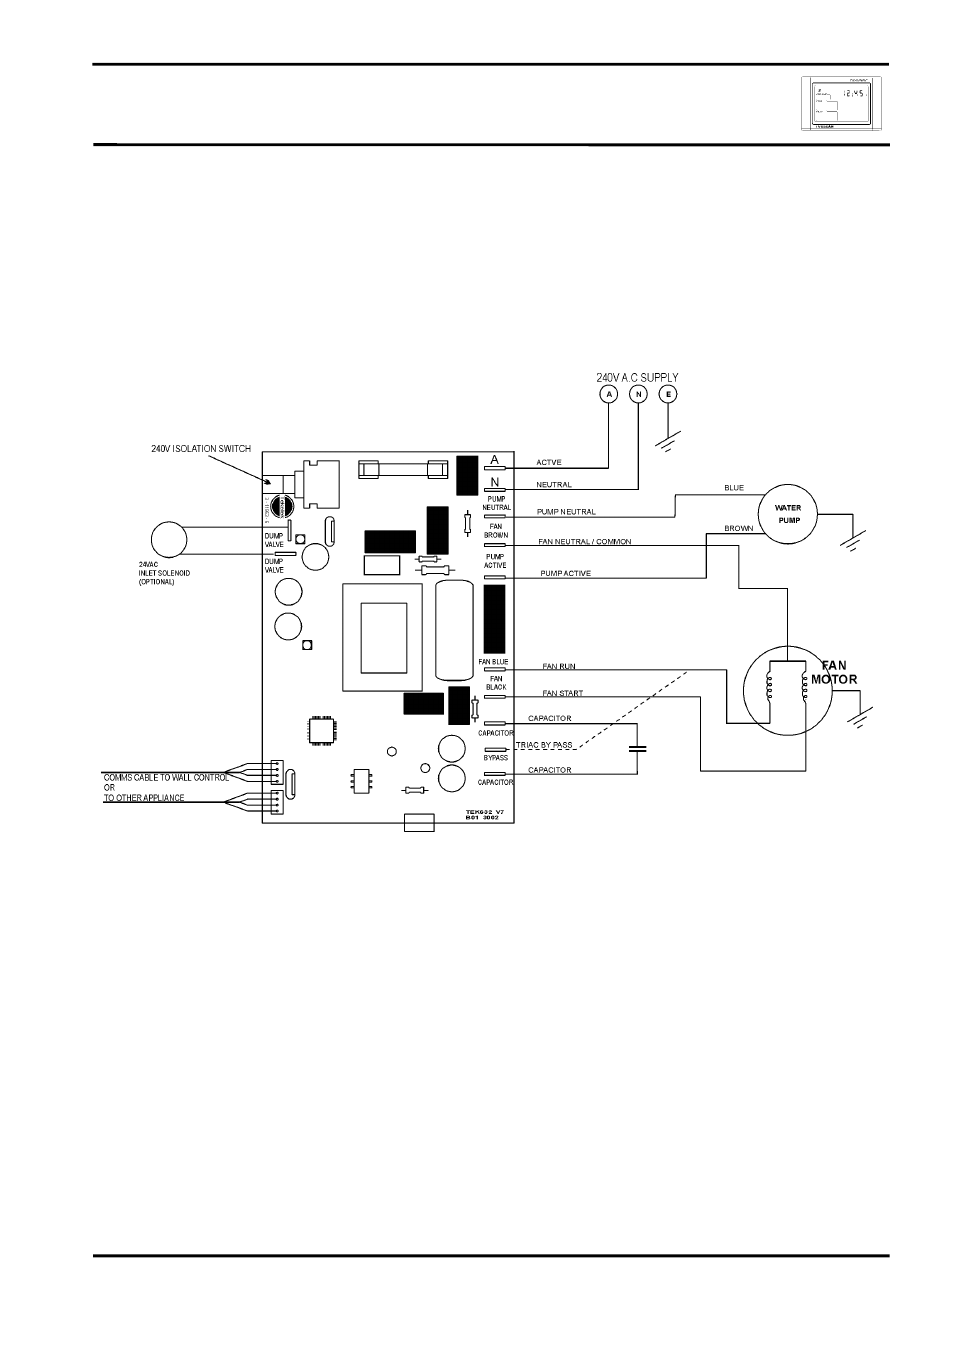 hight resolution of circuit diagram ircuit iagram bonaire touchpad control lv tekelek user manual page 16 32